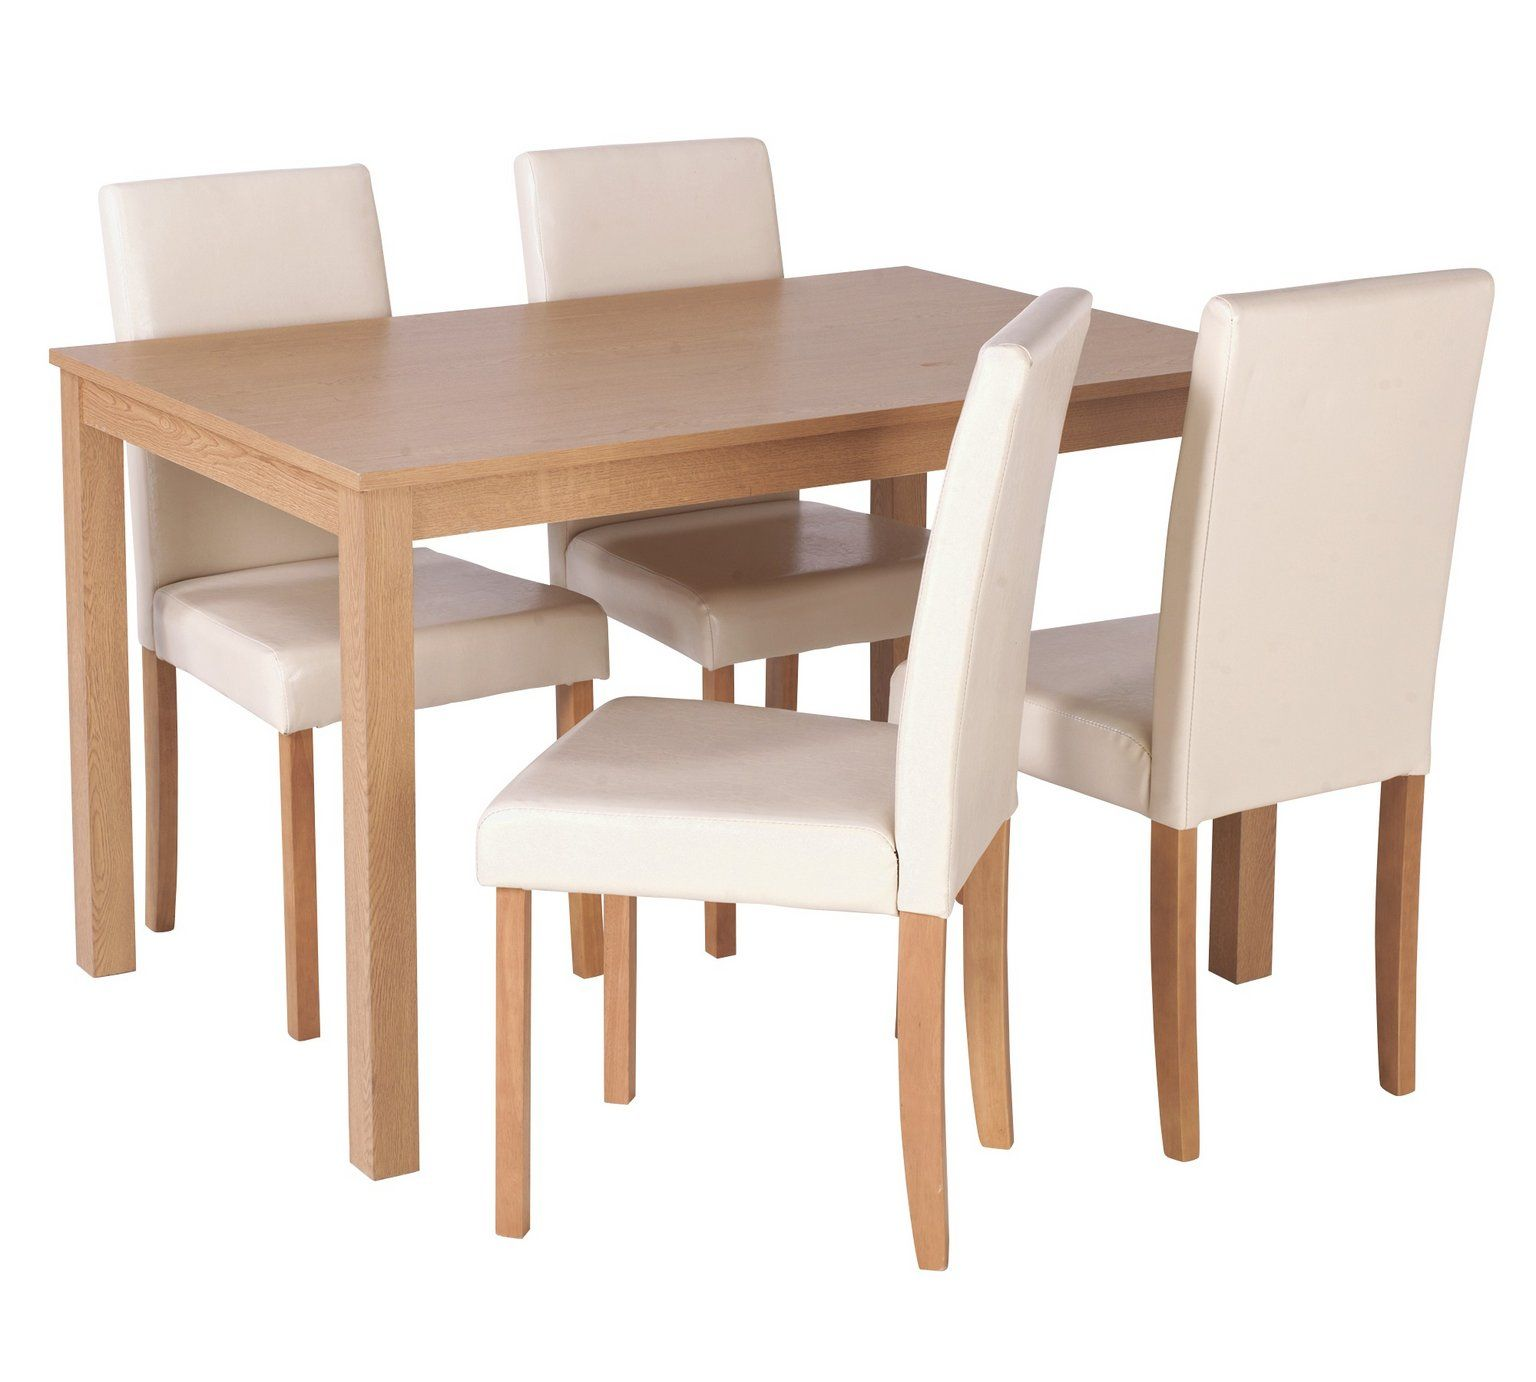 buy home elmdon oak effect dining table 4 chairs cream at argos